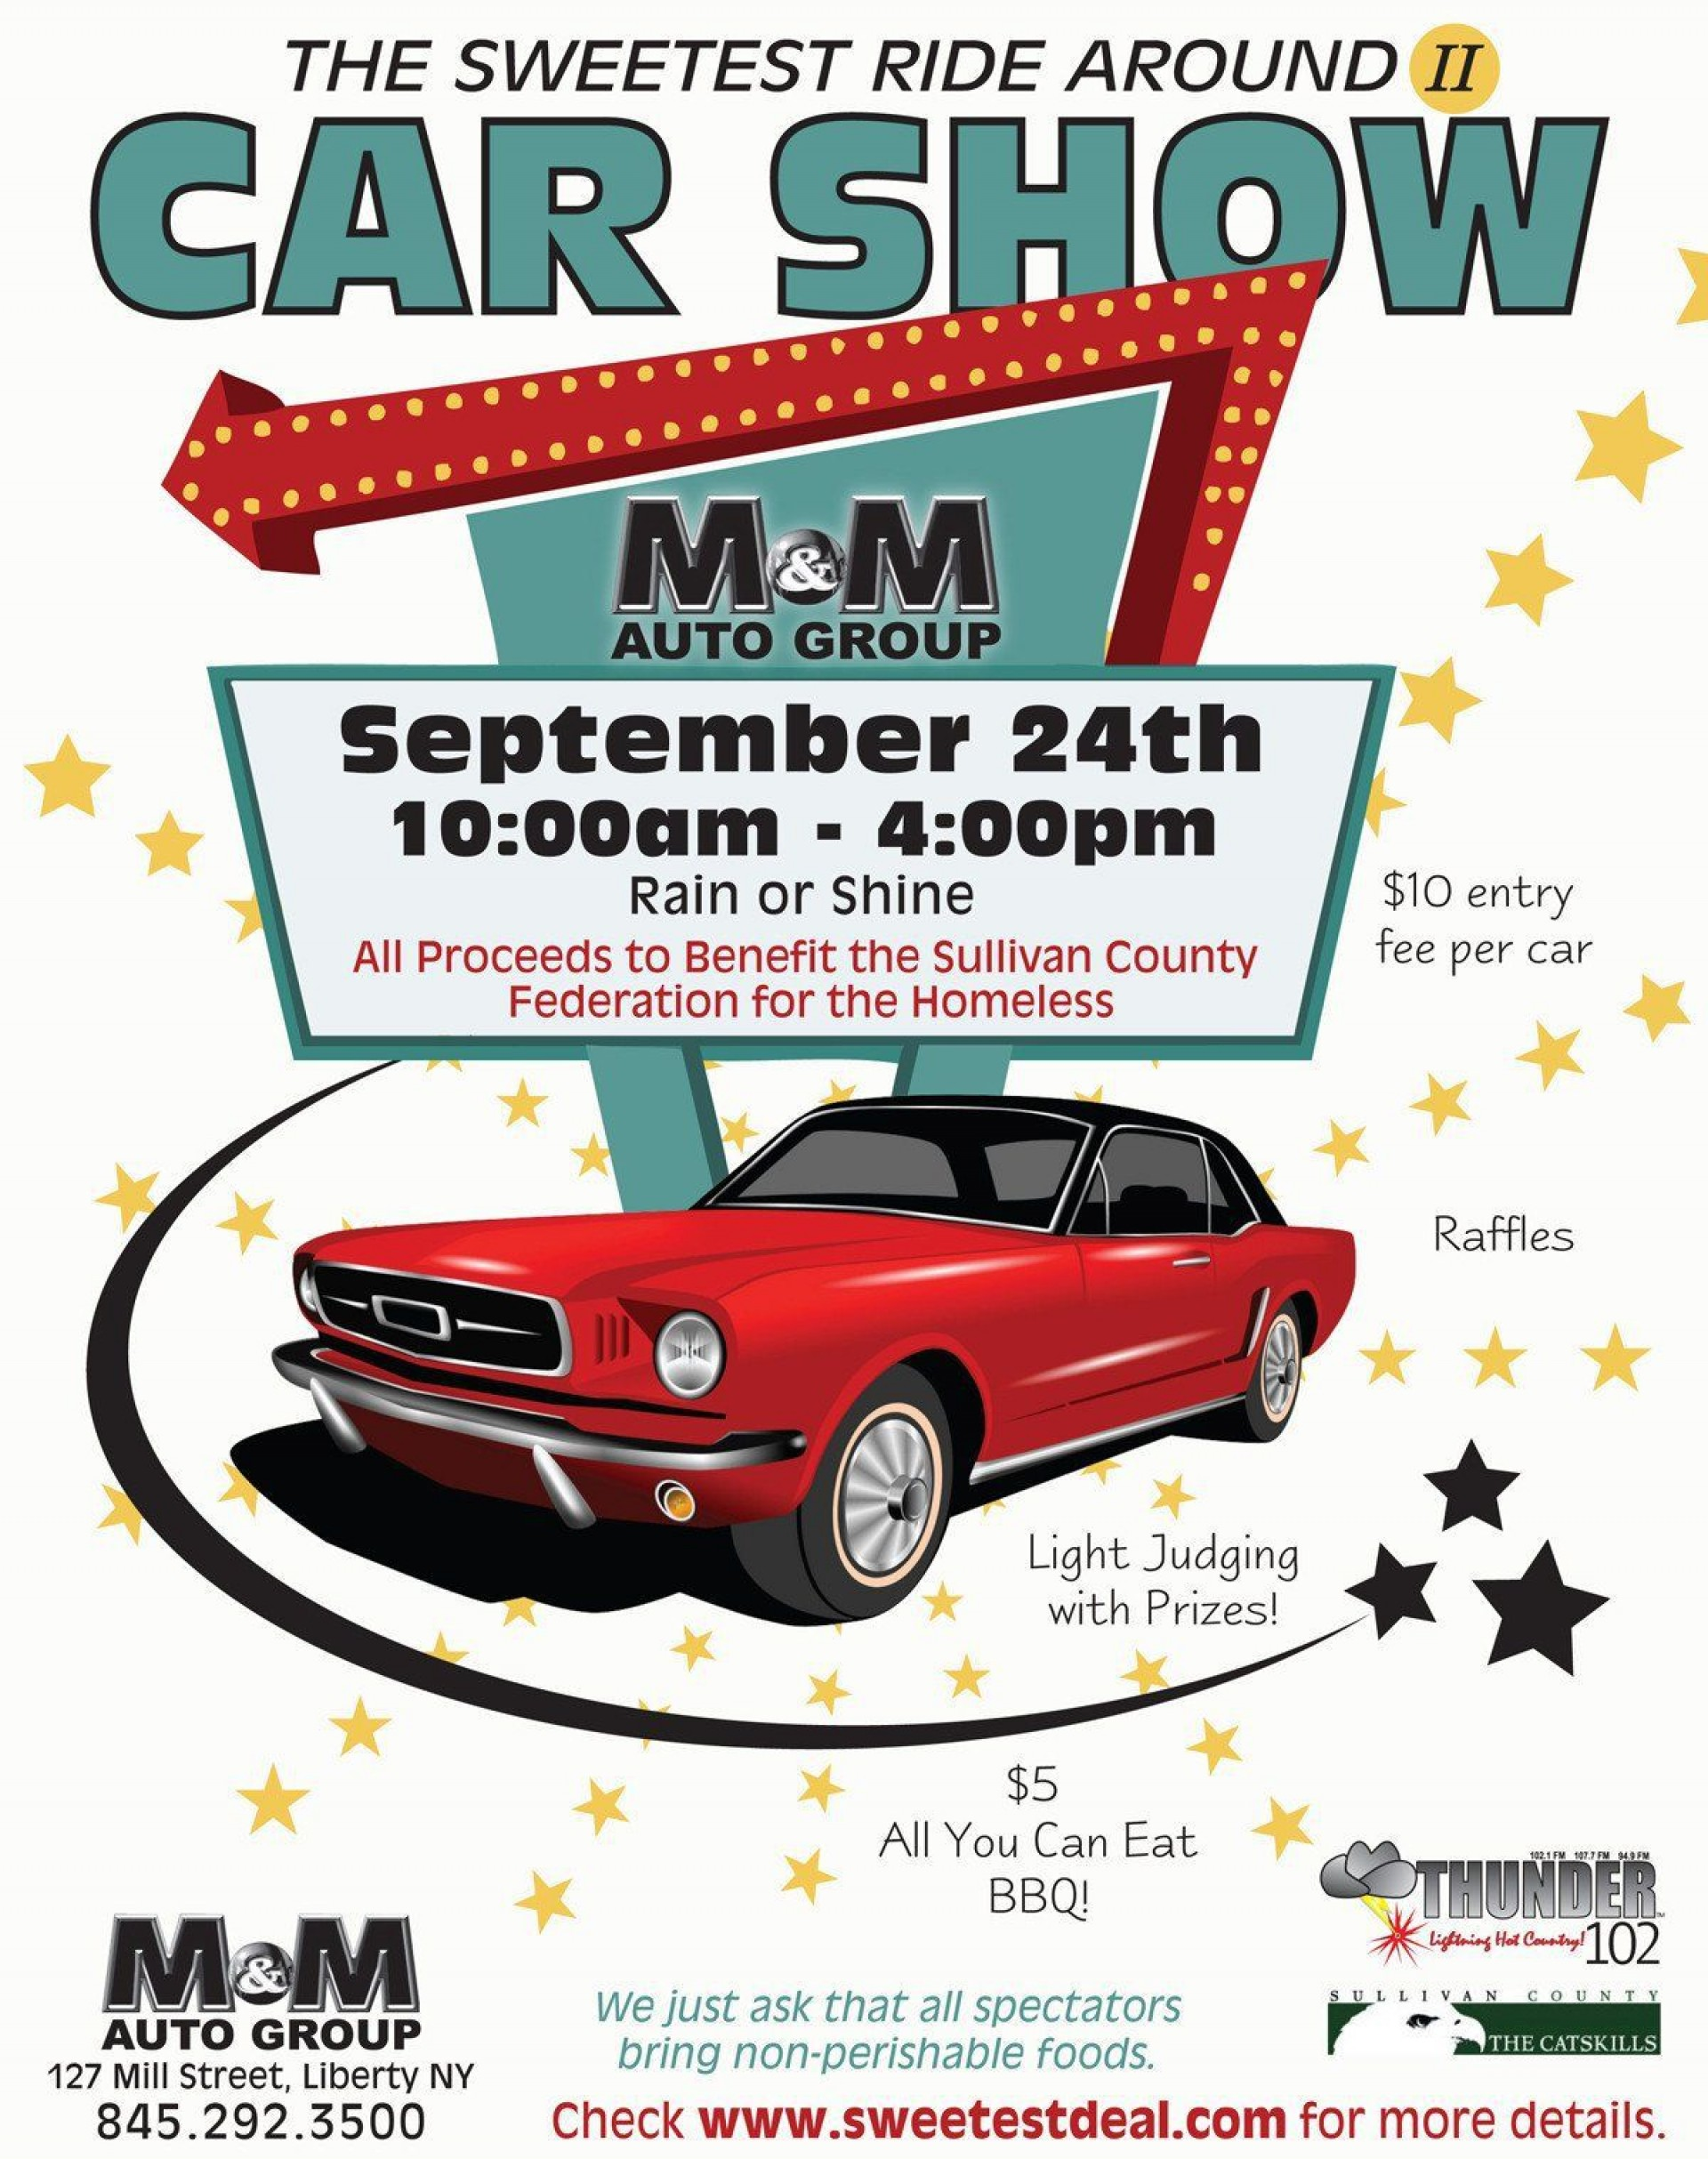 002 Shocking Free Car Show Flyer Template Picture  Psd And Bike1920